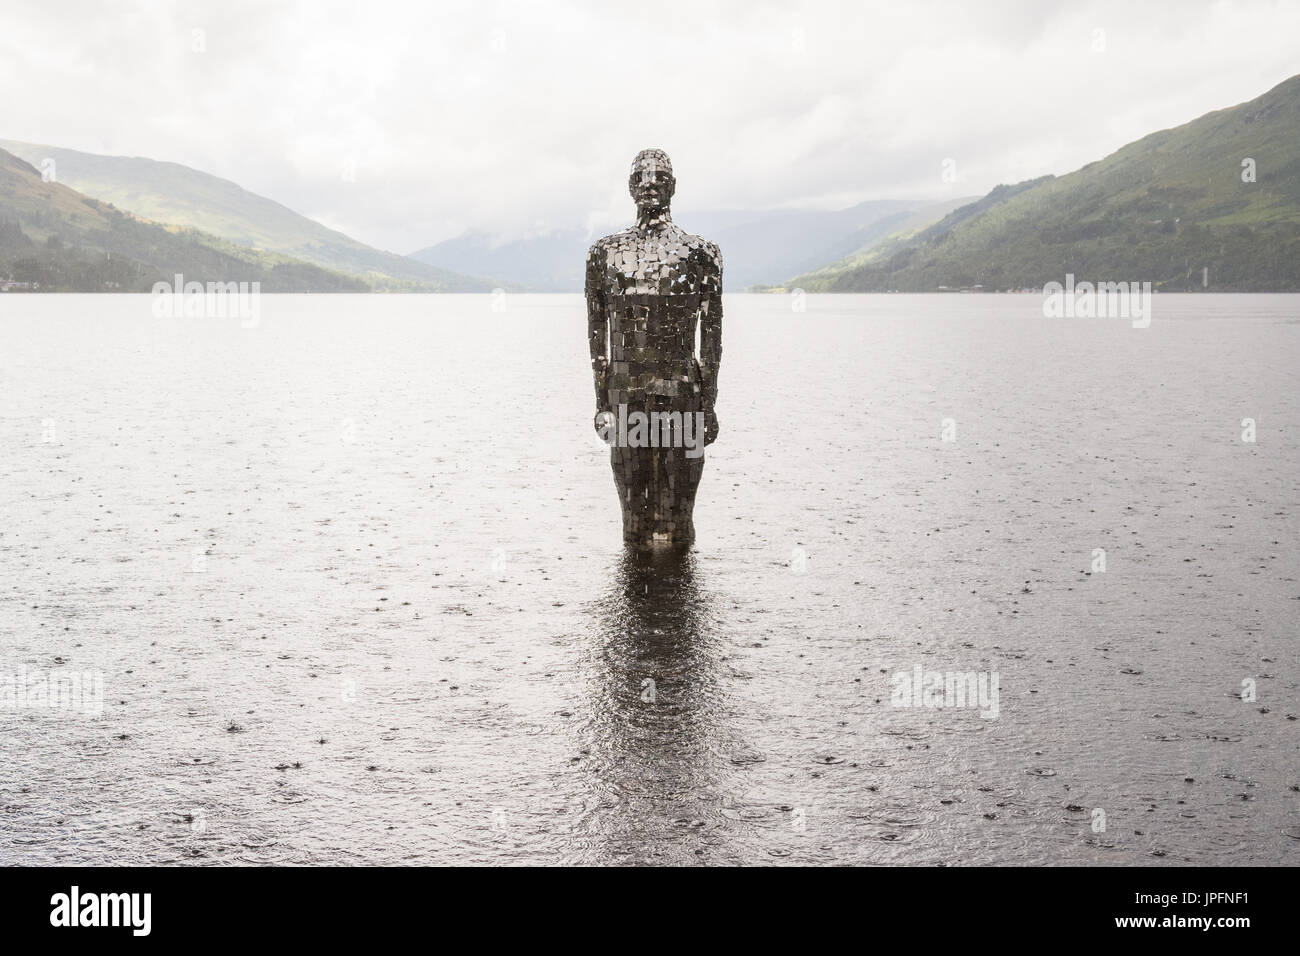 Loch Earn, St Fillans, Perth and Kinross, Scotland, UK. 1st Aug, 2017. UK weather - a looming figure titled 'Still', but locally known as Mirror Man endured a day of heavy showers with brief sunny intervals. The artwork by artist Rob Mullholland is made from mirrored tiles. Credit: Kay Roxby/Alamy Live News - Stock Image